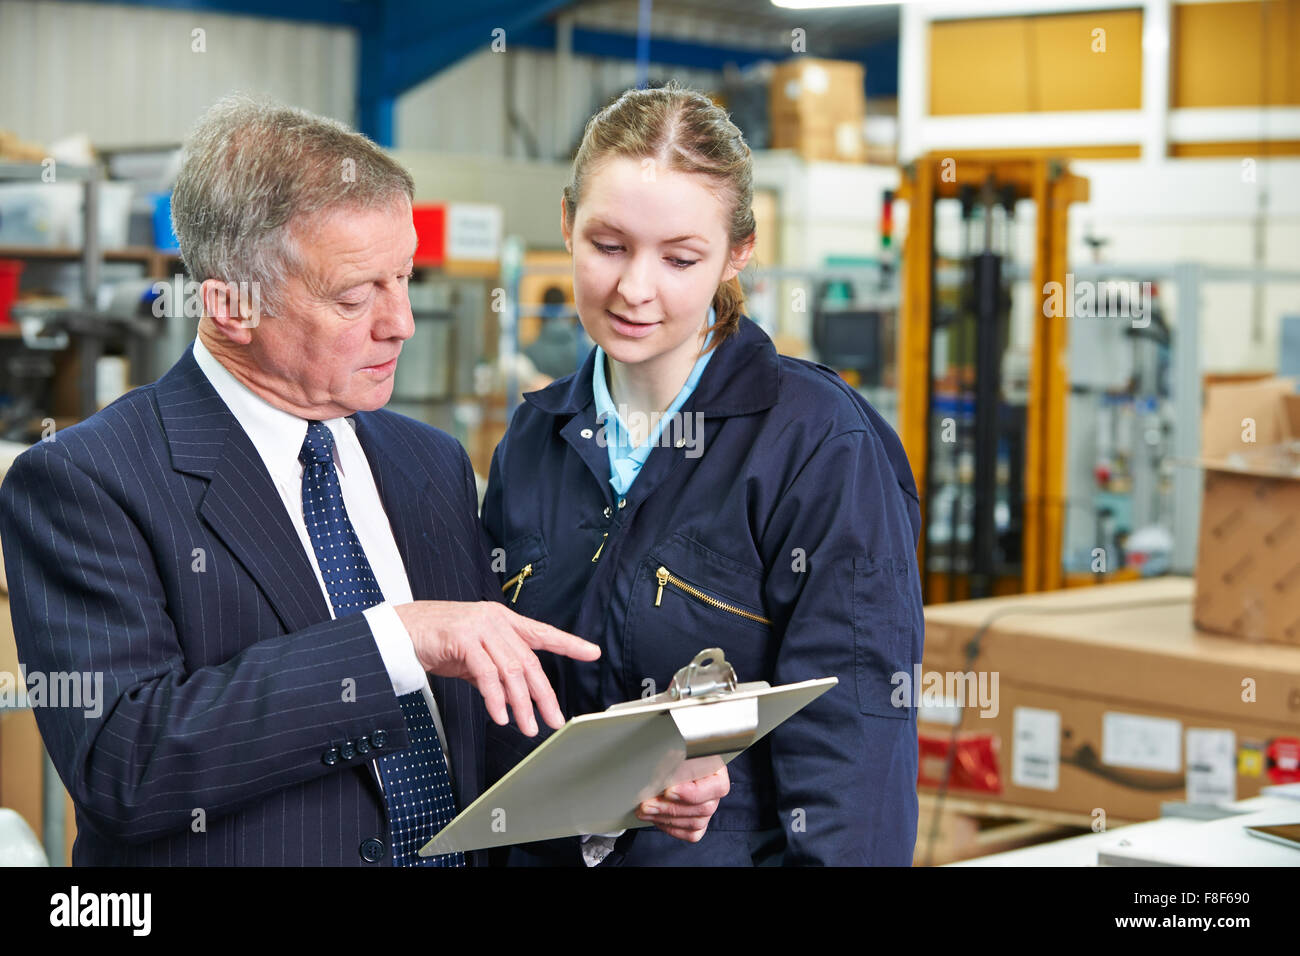 Factory Manager And Apprentice Engineer Looking At Clipboard Stock Photo